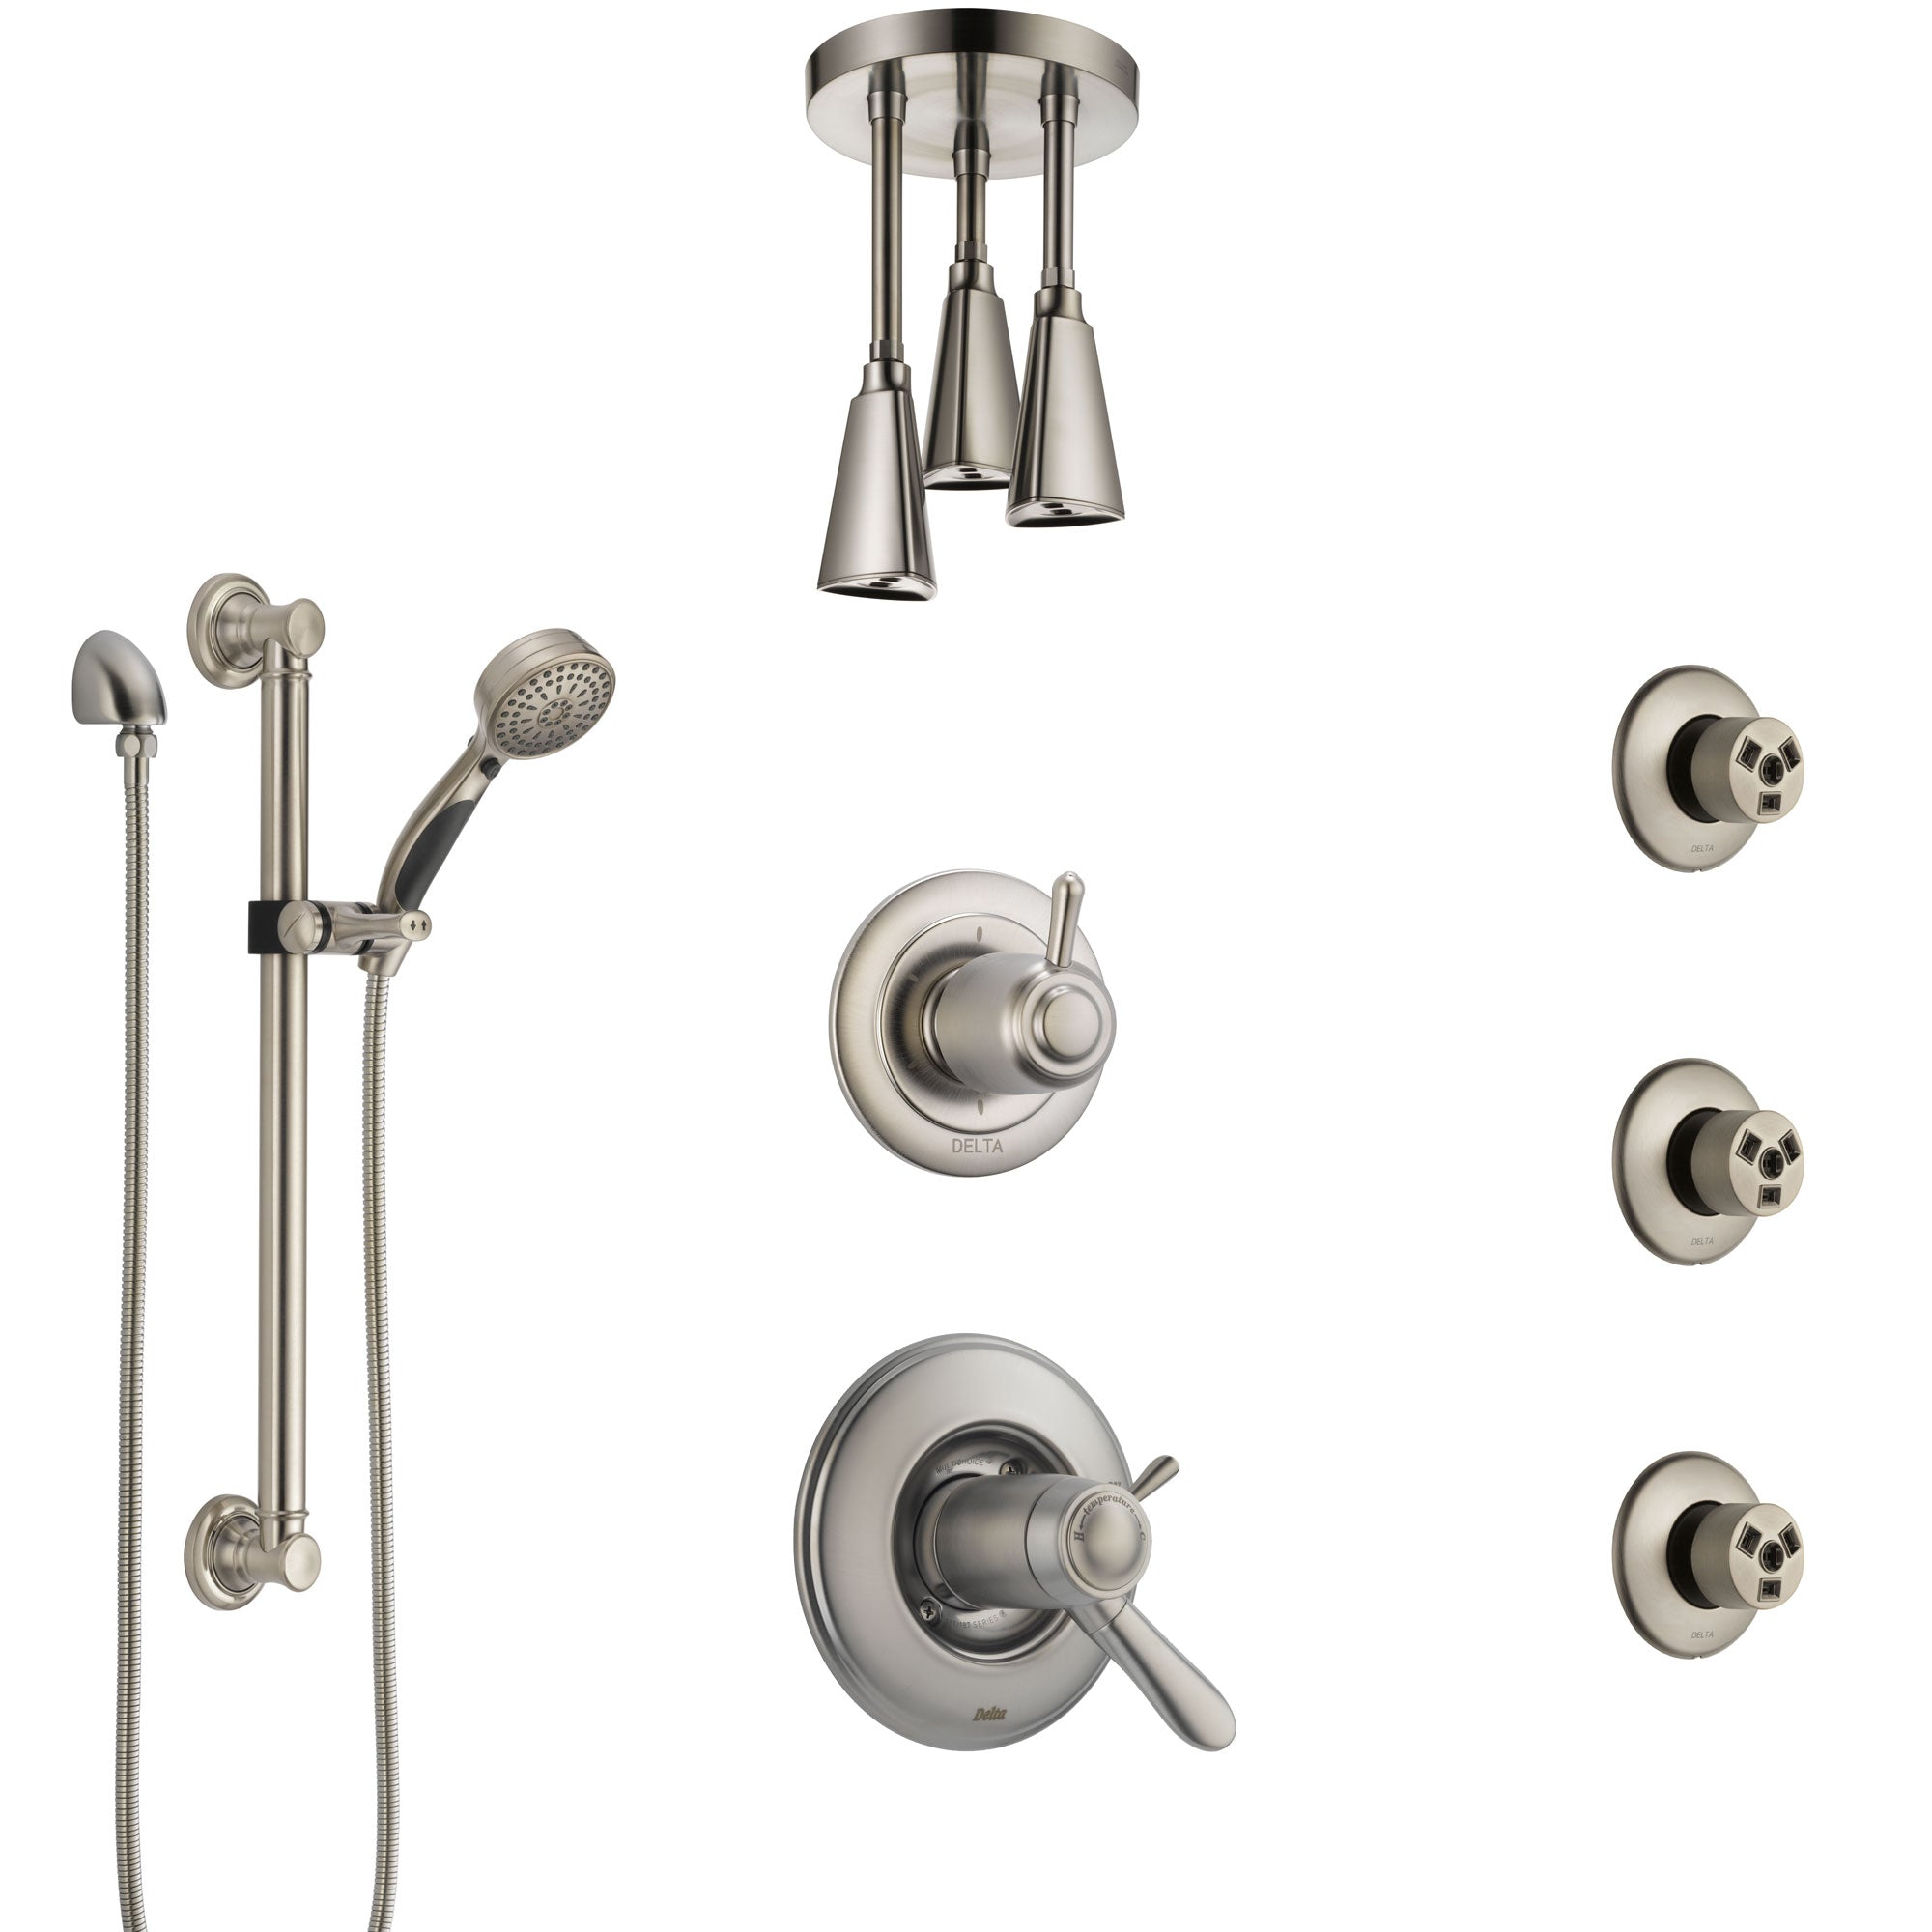 Delta Lahara Dual Thermostatic Control Stainless Steel Finish Shower System with Ceiling Showerhead, 3 Body Jets, Grab Bar Hand Spray SS17T382SS5